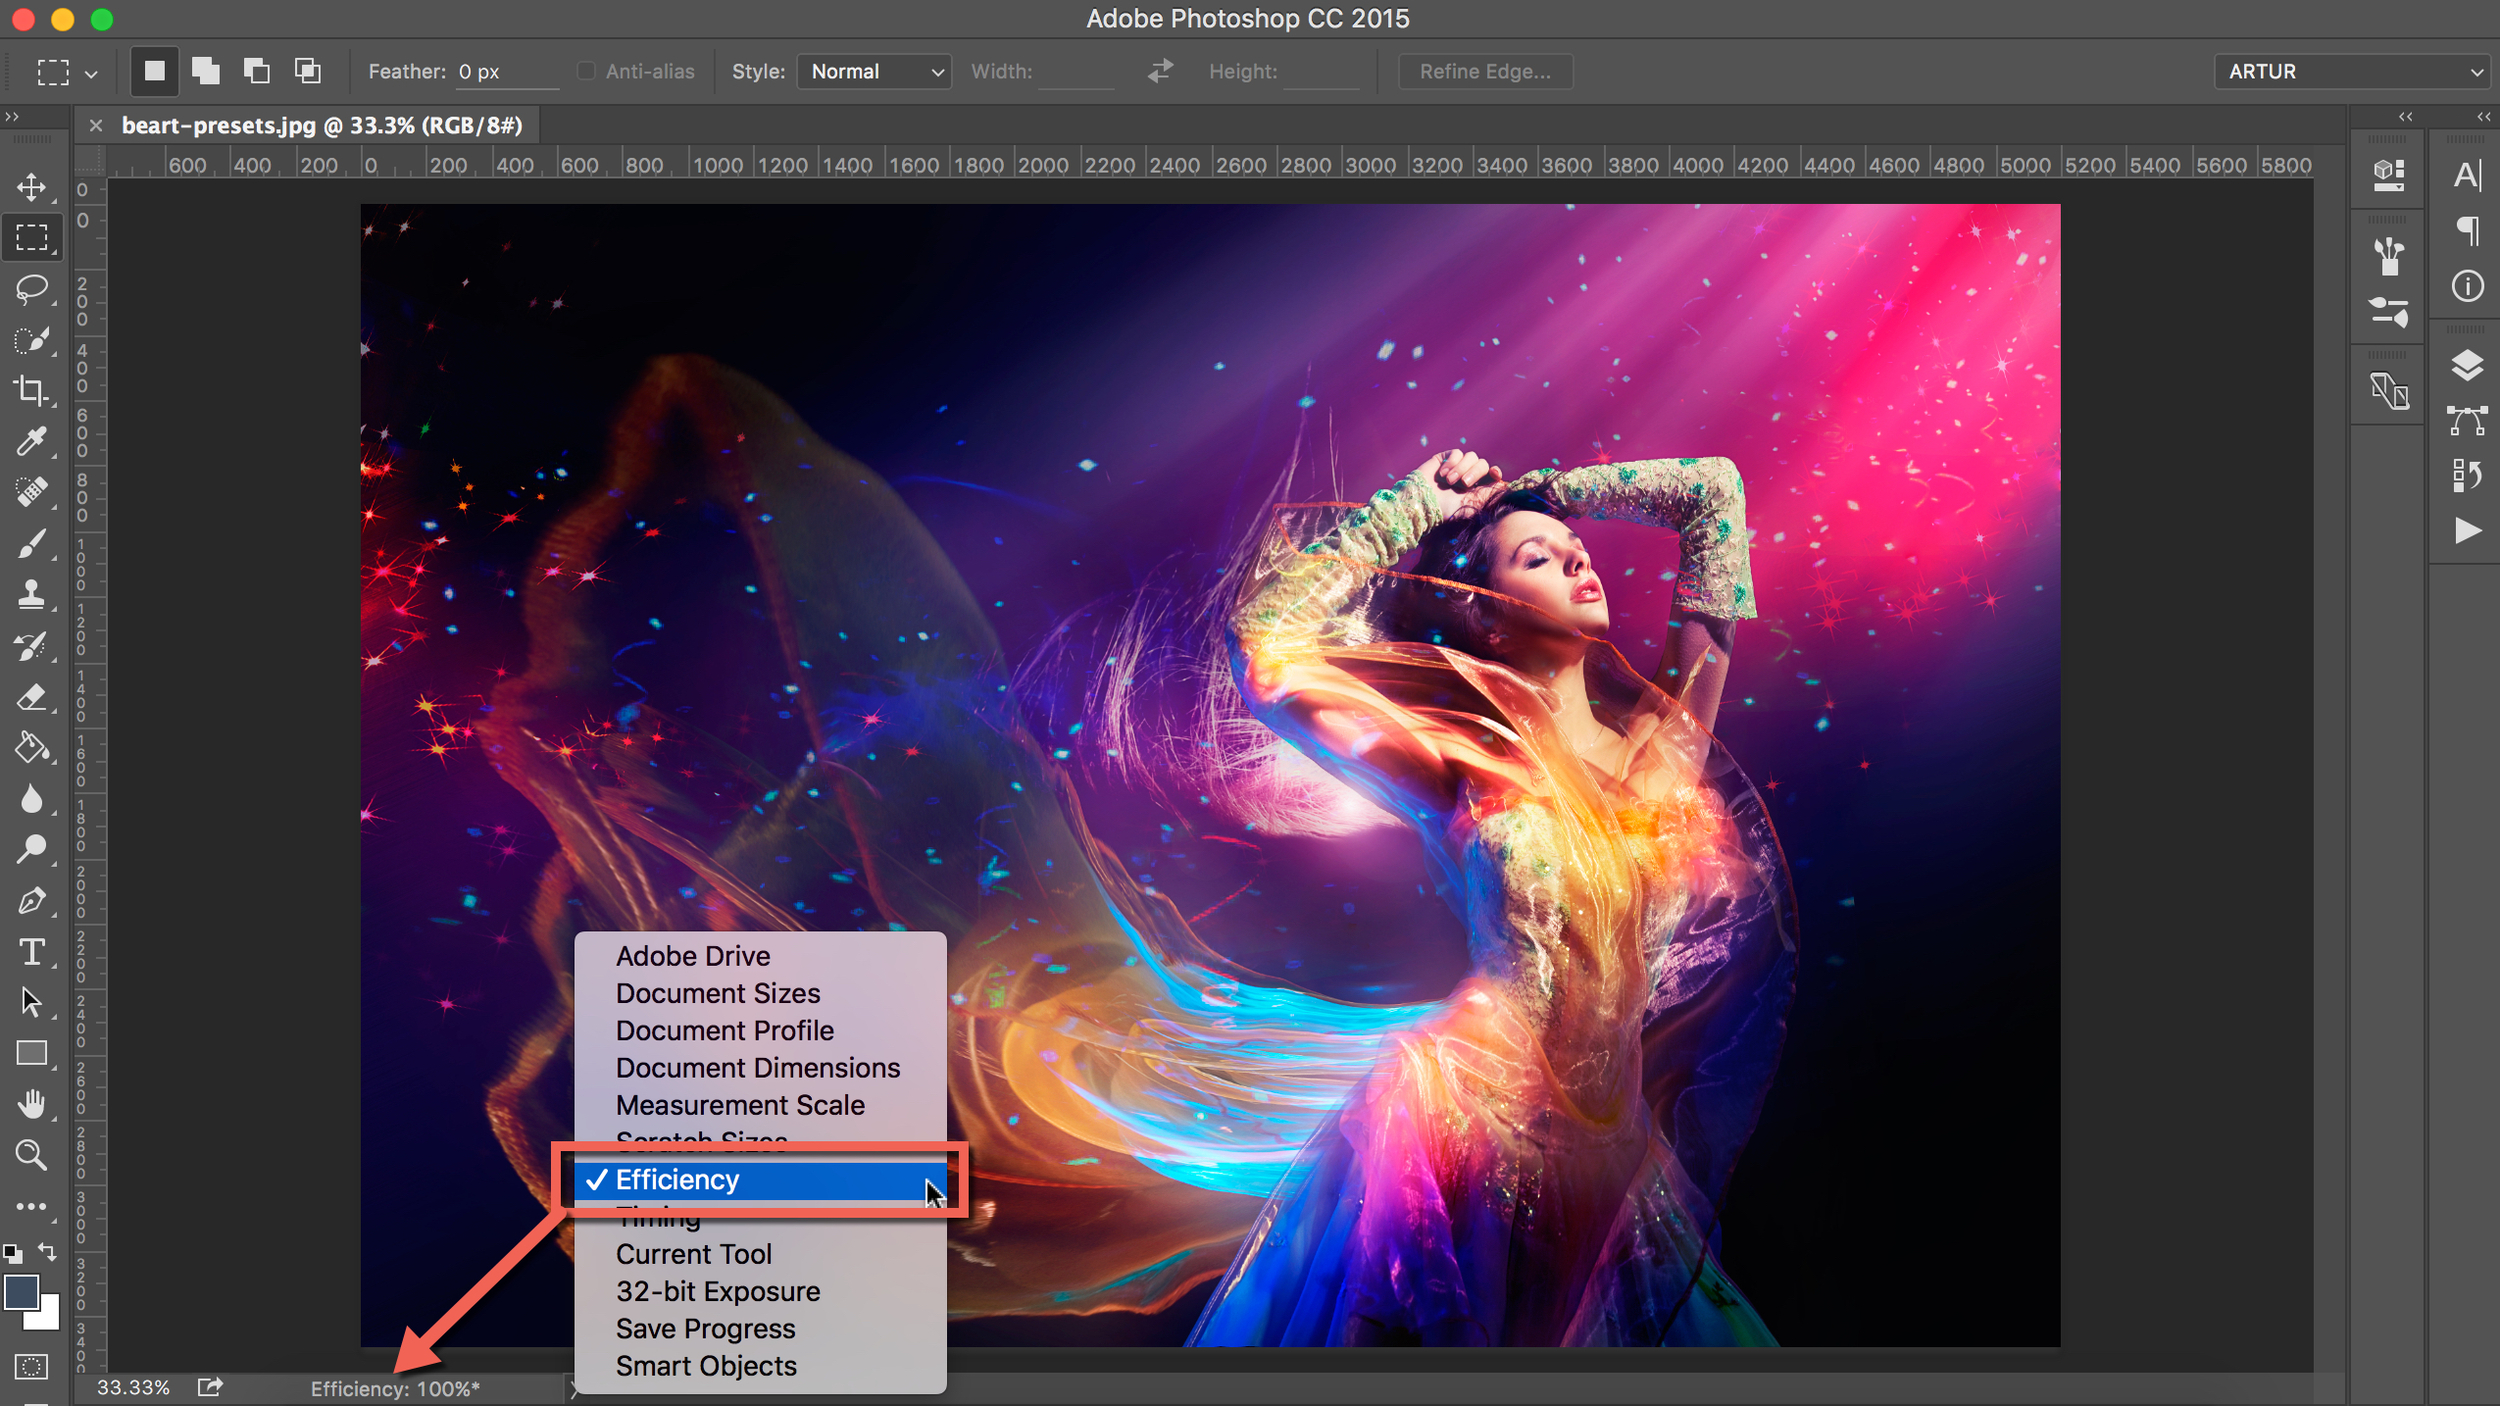 efficiency indicator for photoshop cc